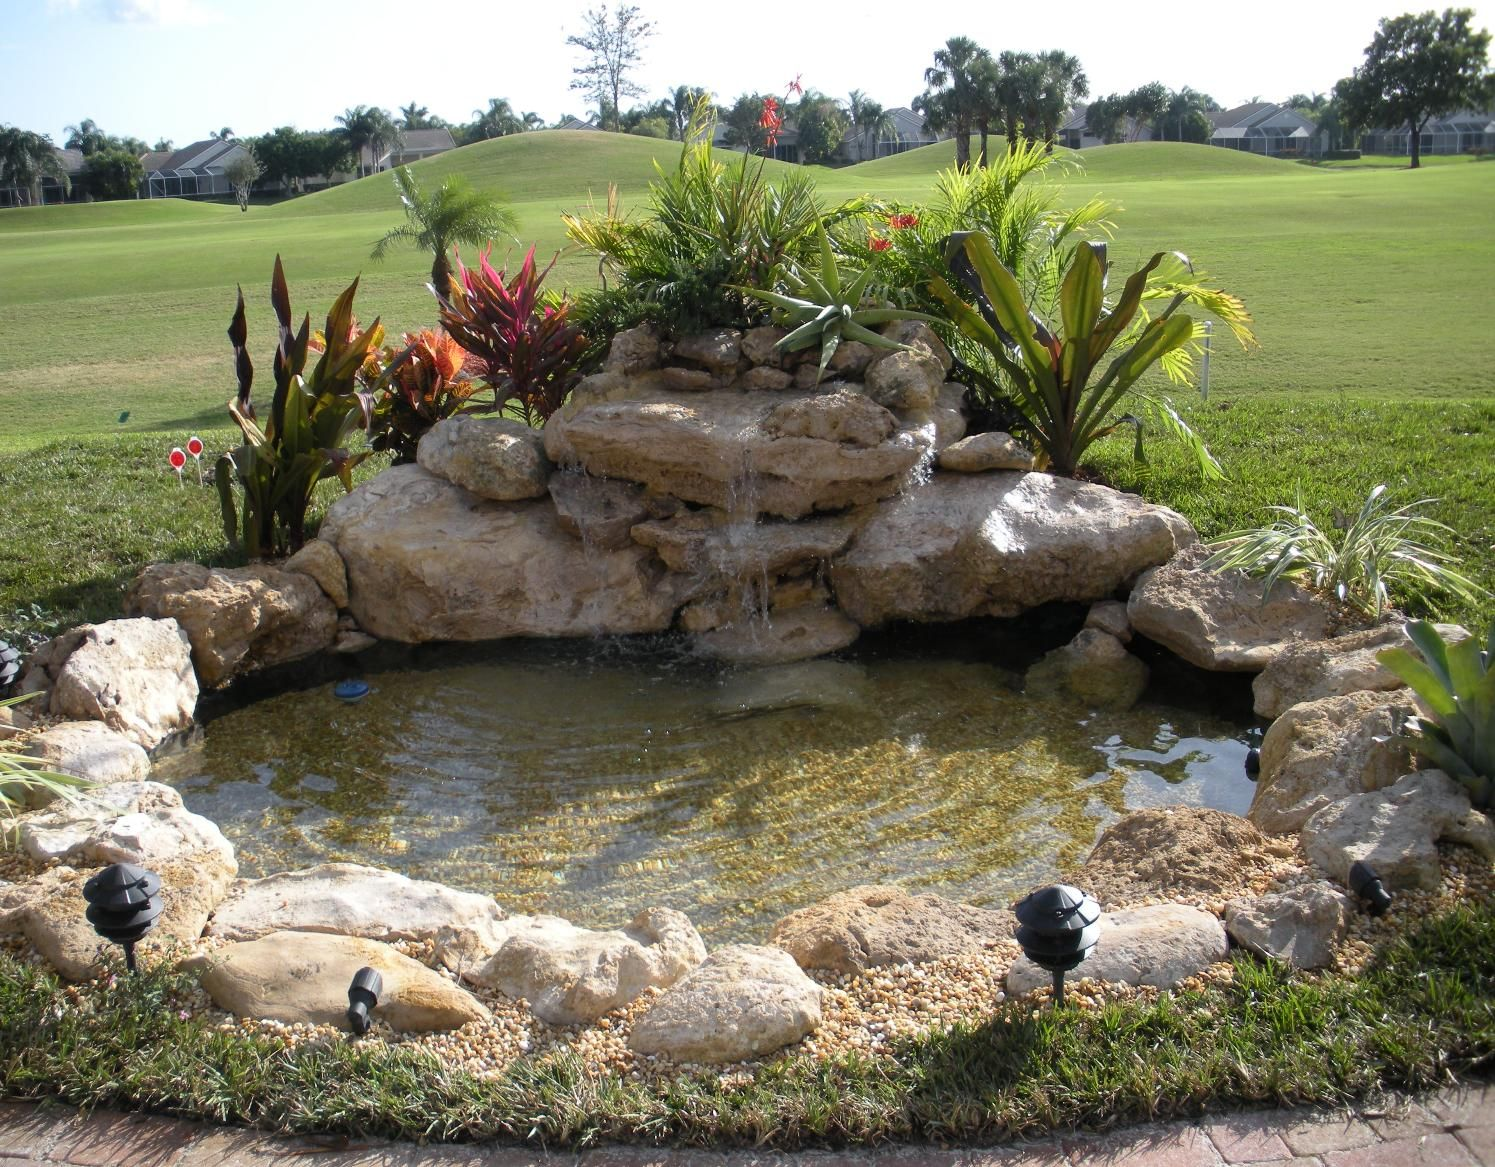 Landscaping waterfalls and fish ponds ways to maintain for Garden with a pond